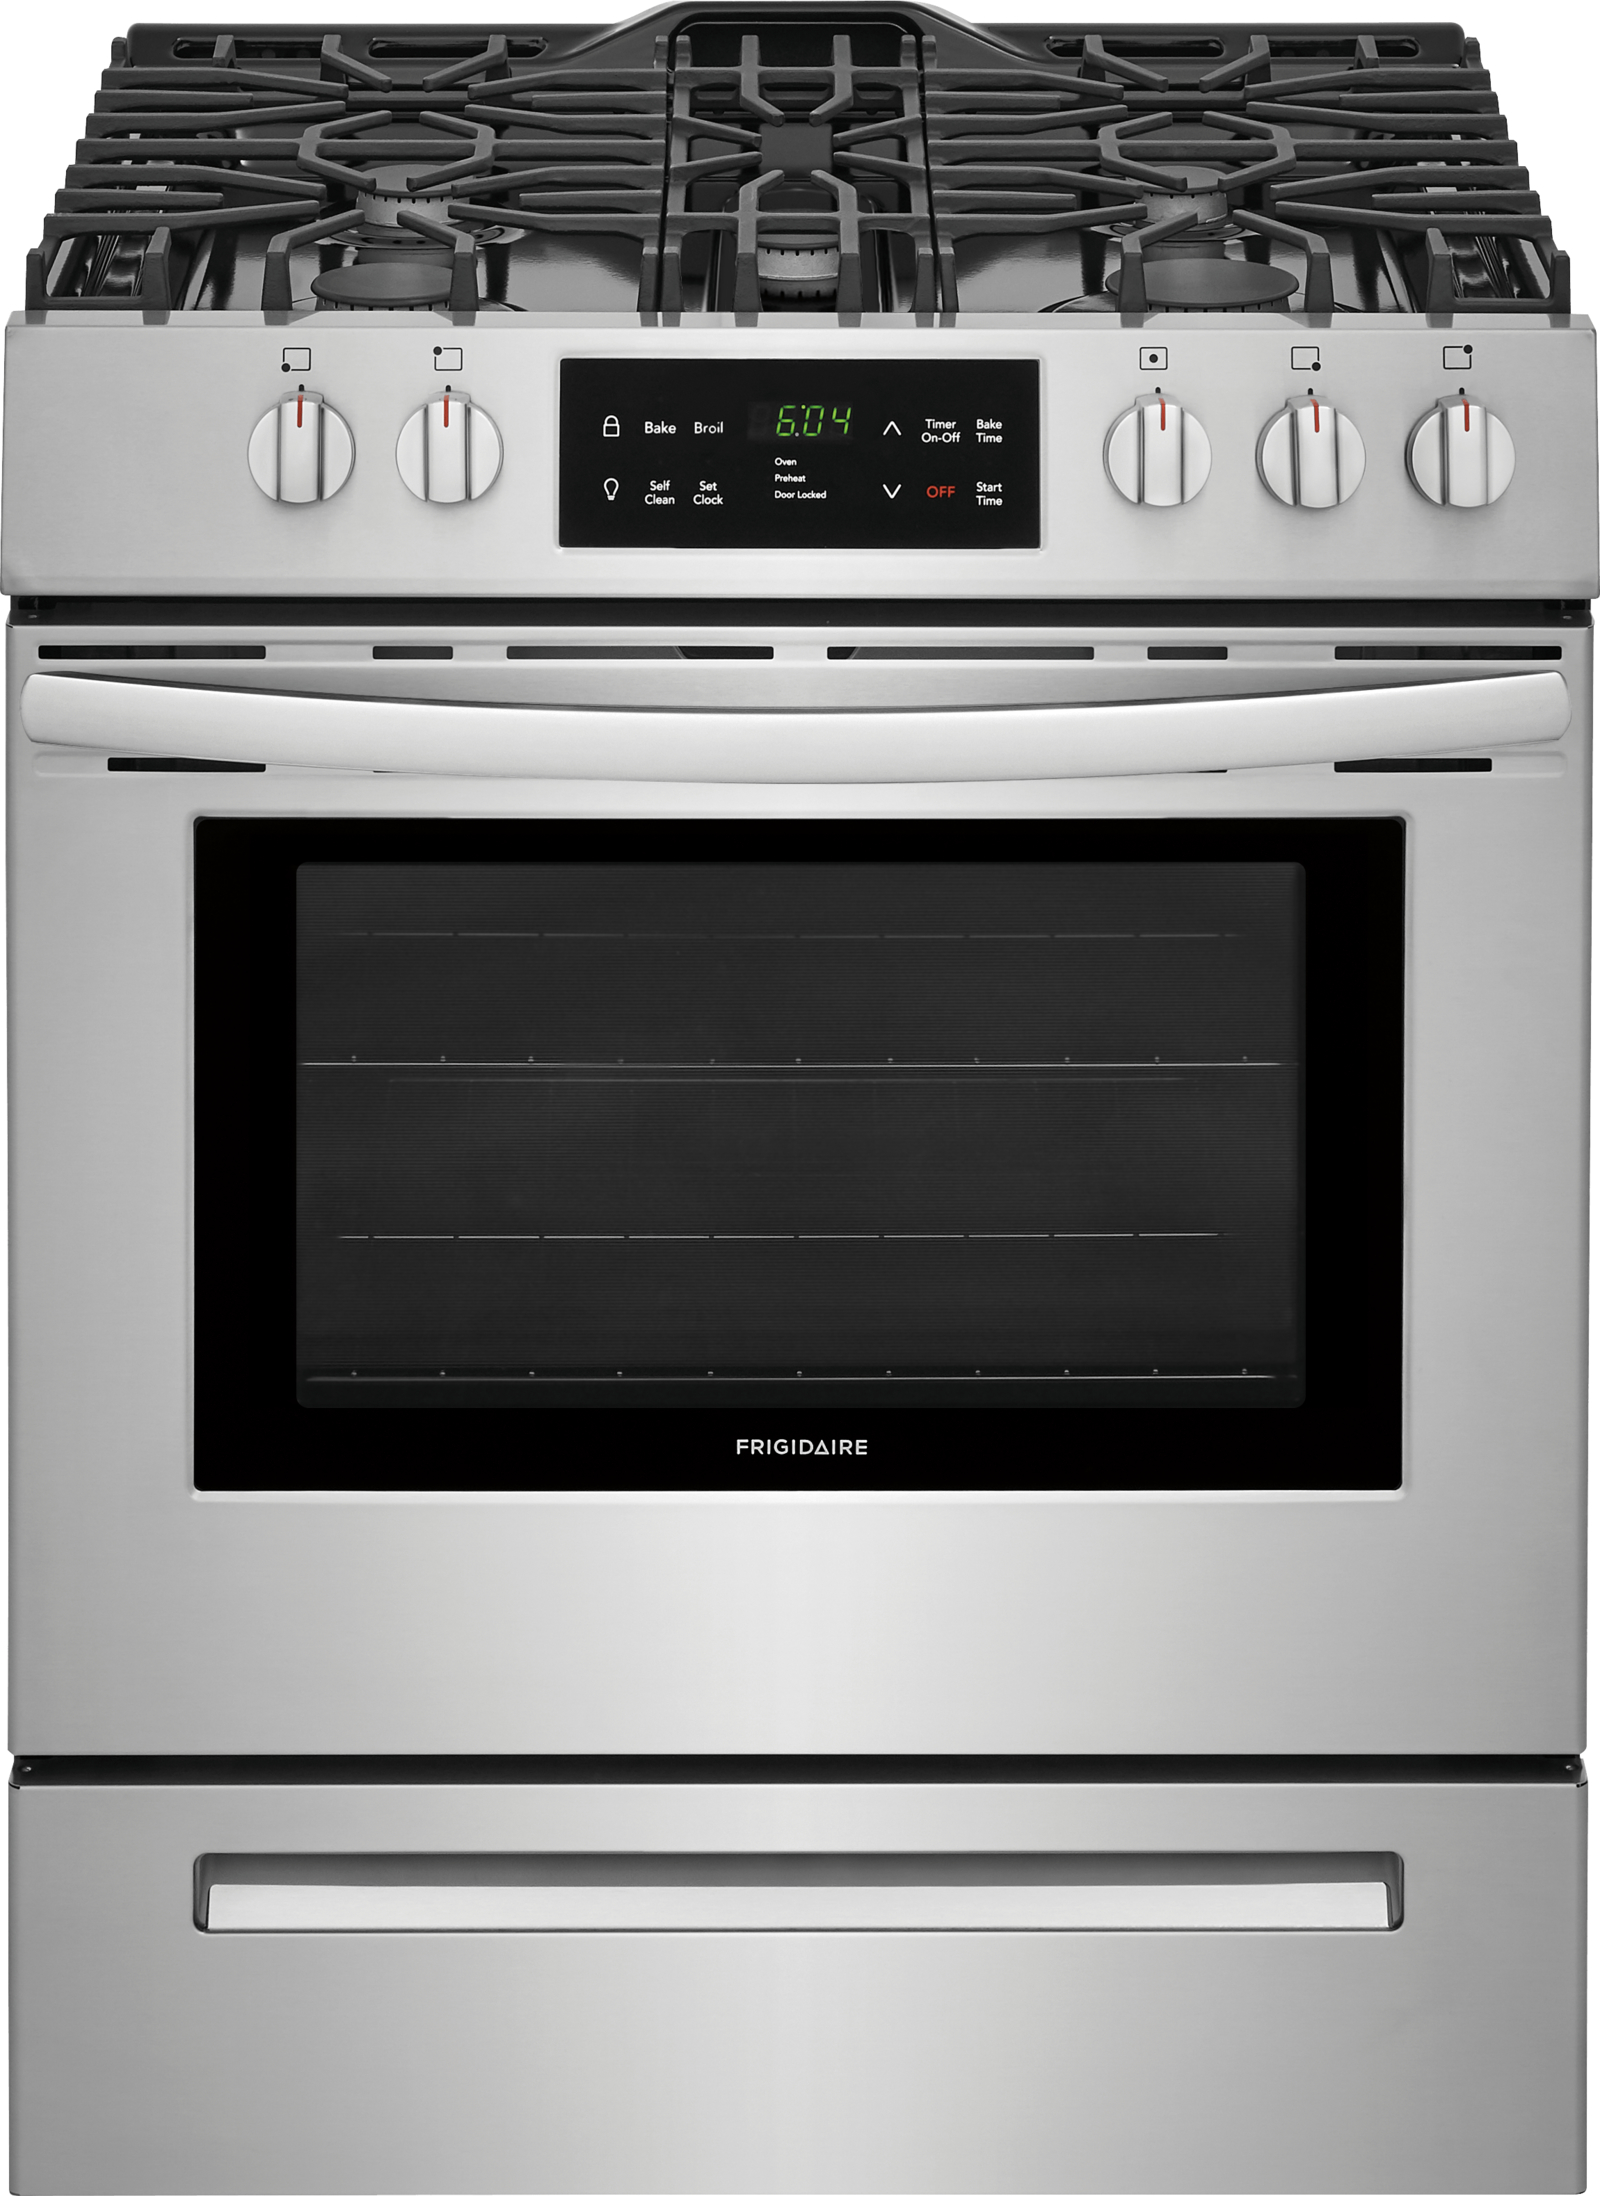 Frigidaire Ffgh3054us 30 Front Control Freestanding Gas